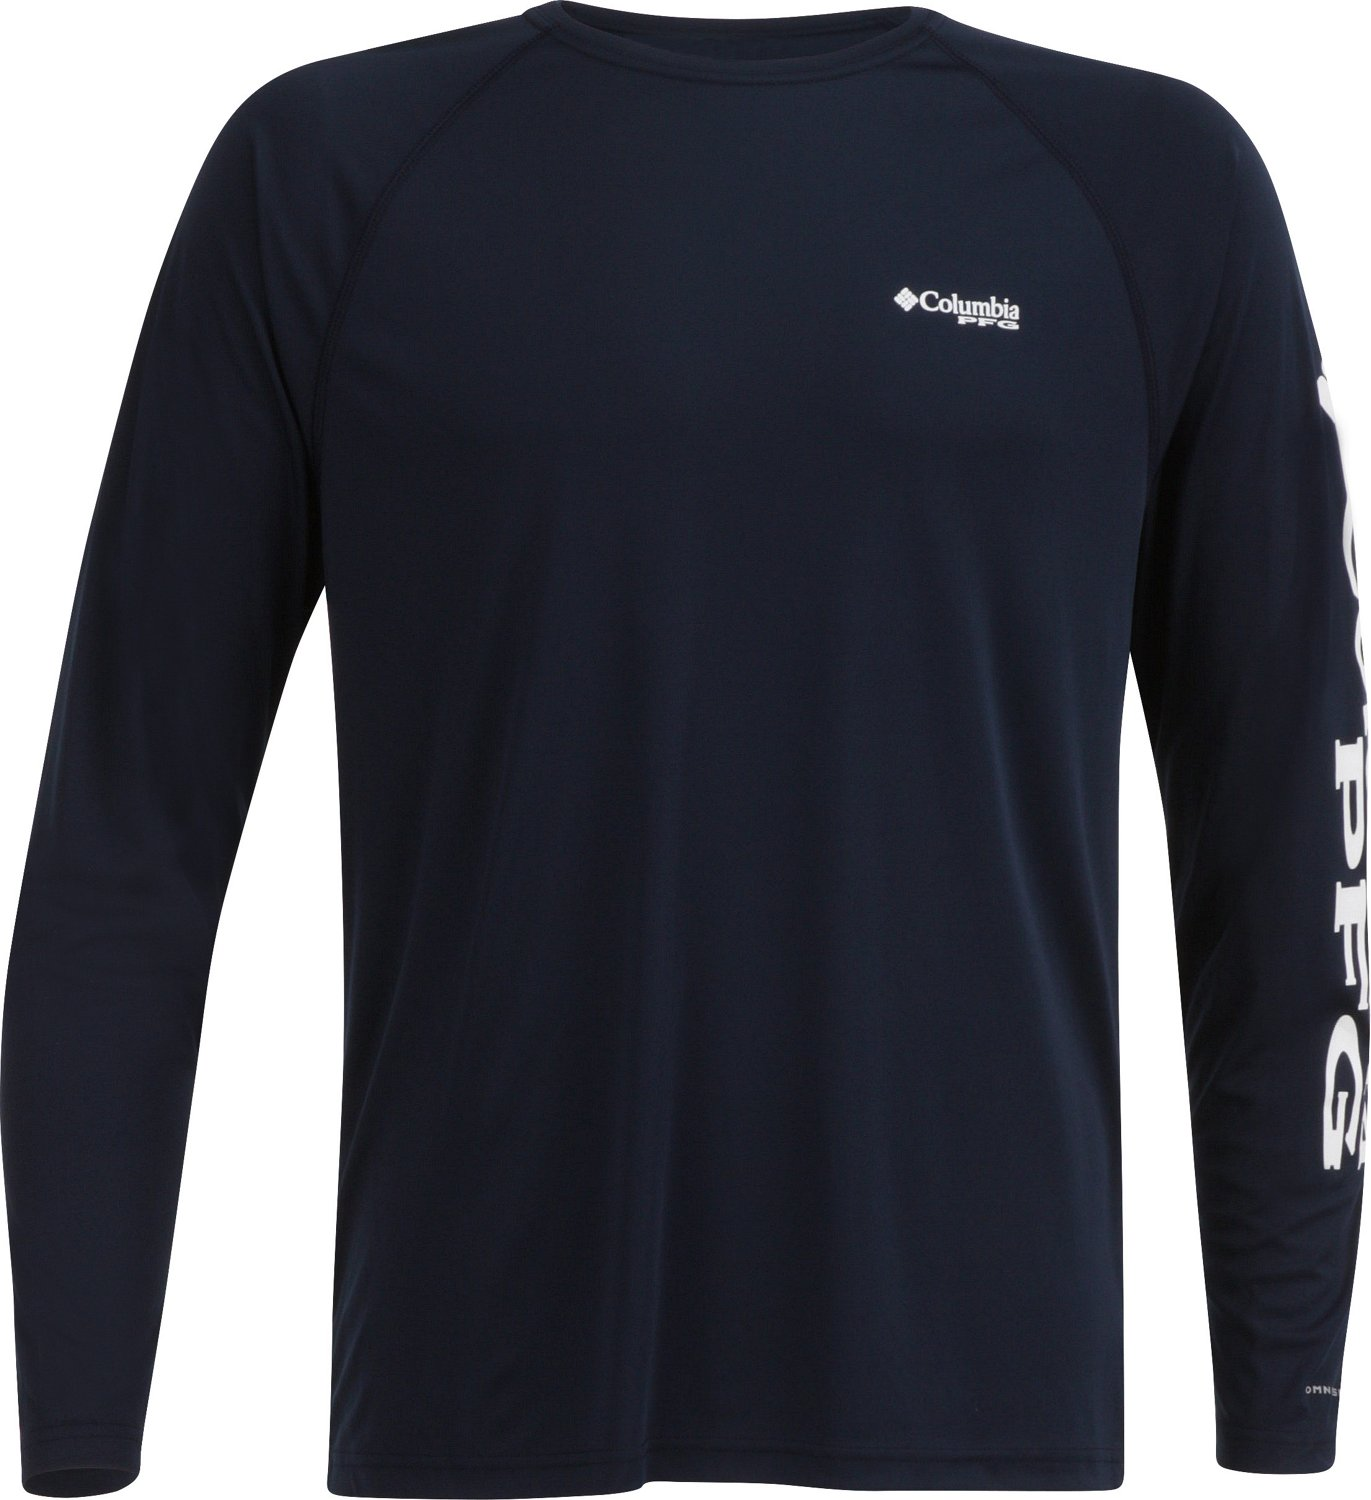 33a6cc5064d Columbia Sportswear Men's Terminal Tackle Long Sleeve T-shirt | Academy